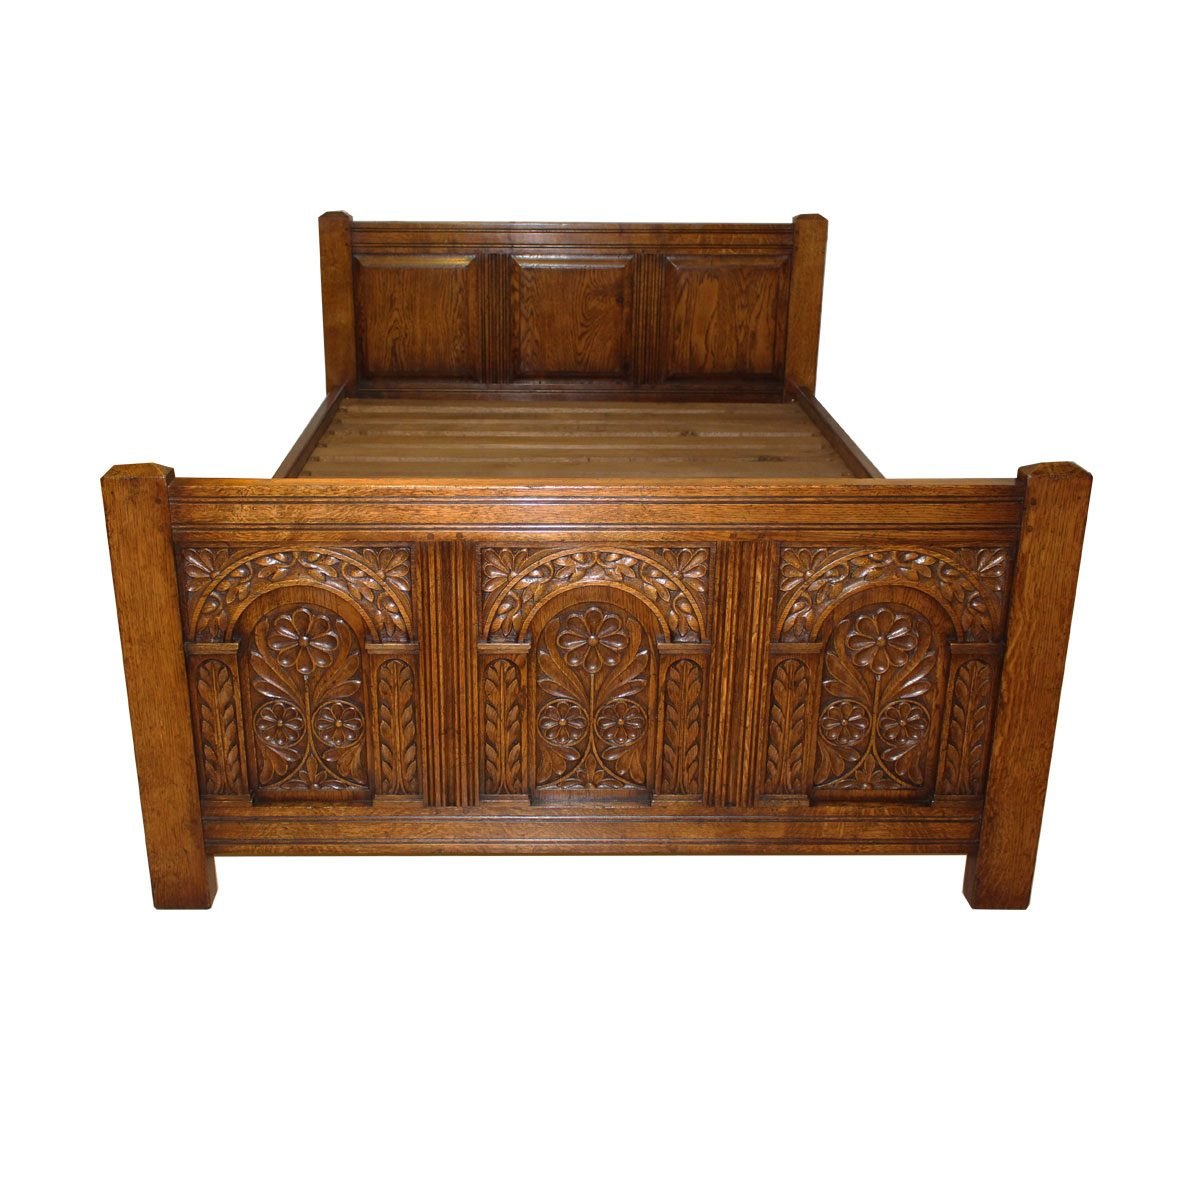 Bespoke Carved Bed Handcrafted in Suffolk